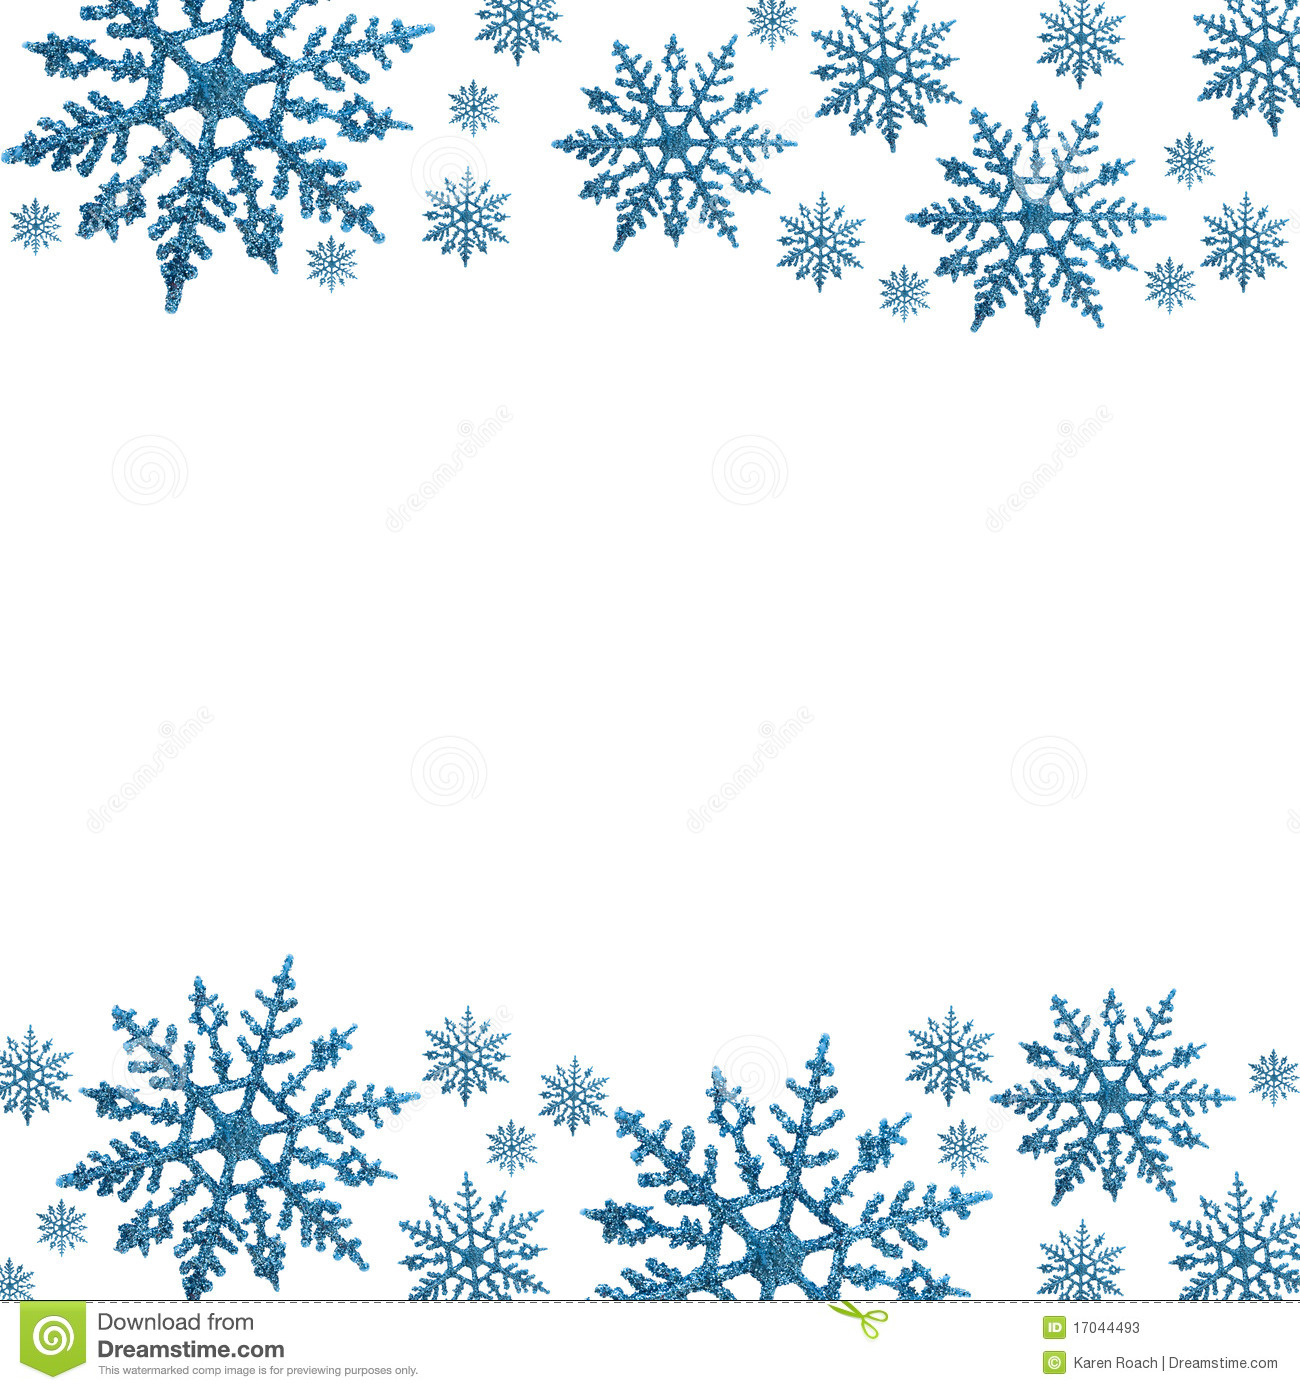 Word clipart snowflake Free snow collection clipart frame